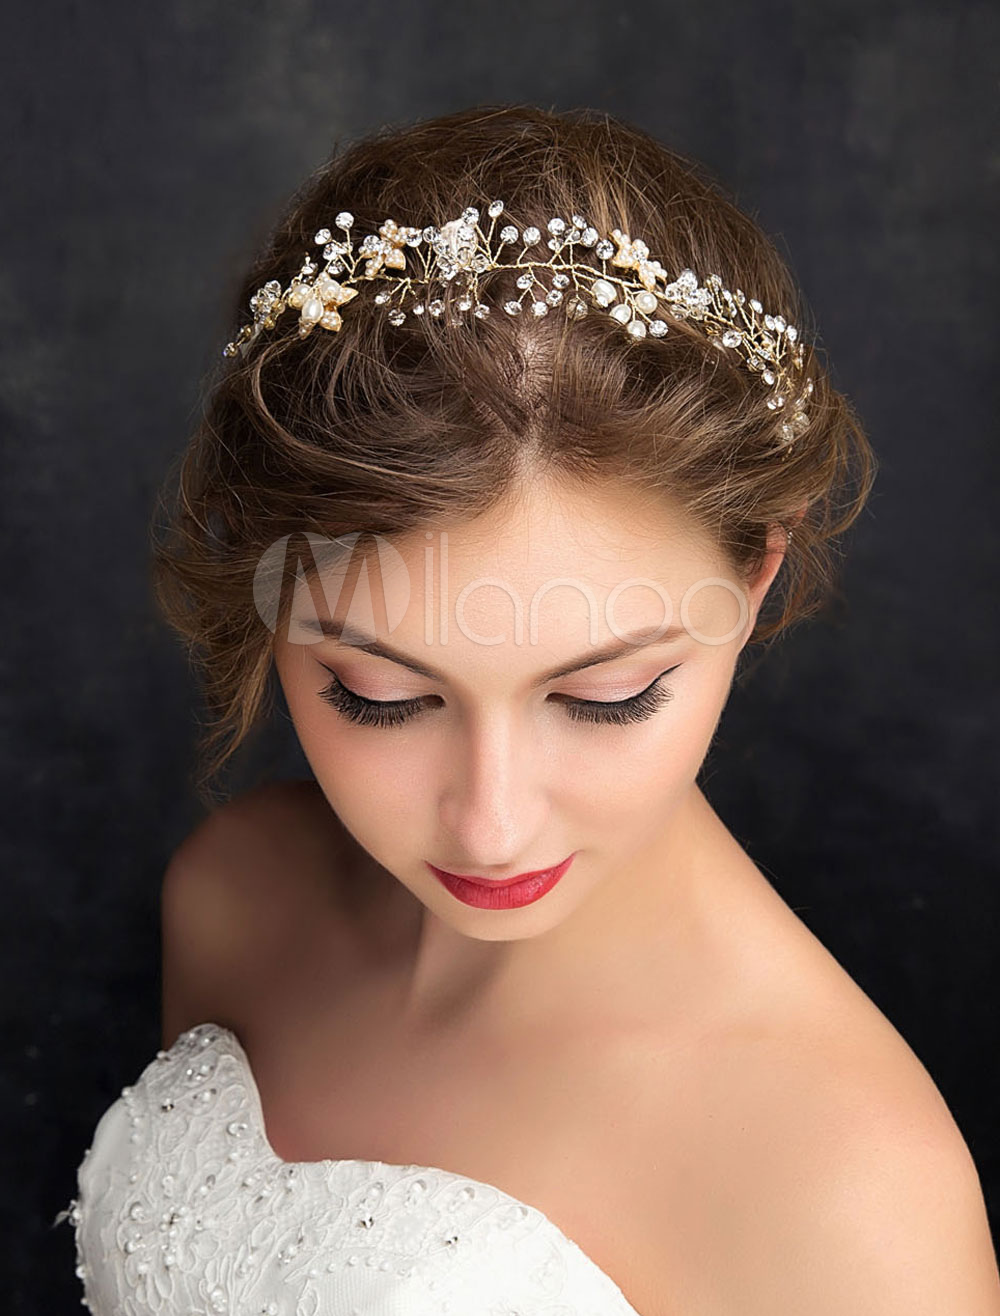 Buy Wedding Hair Headband Silver Imitation Pearls Rhinestones Alloy Bridal Hair Accessories for $21.59 in Milanoo store